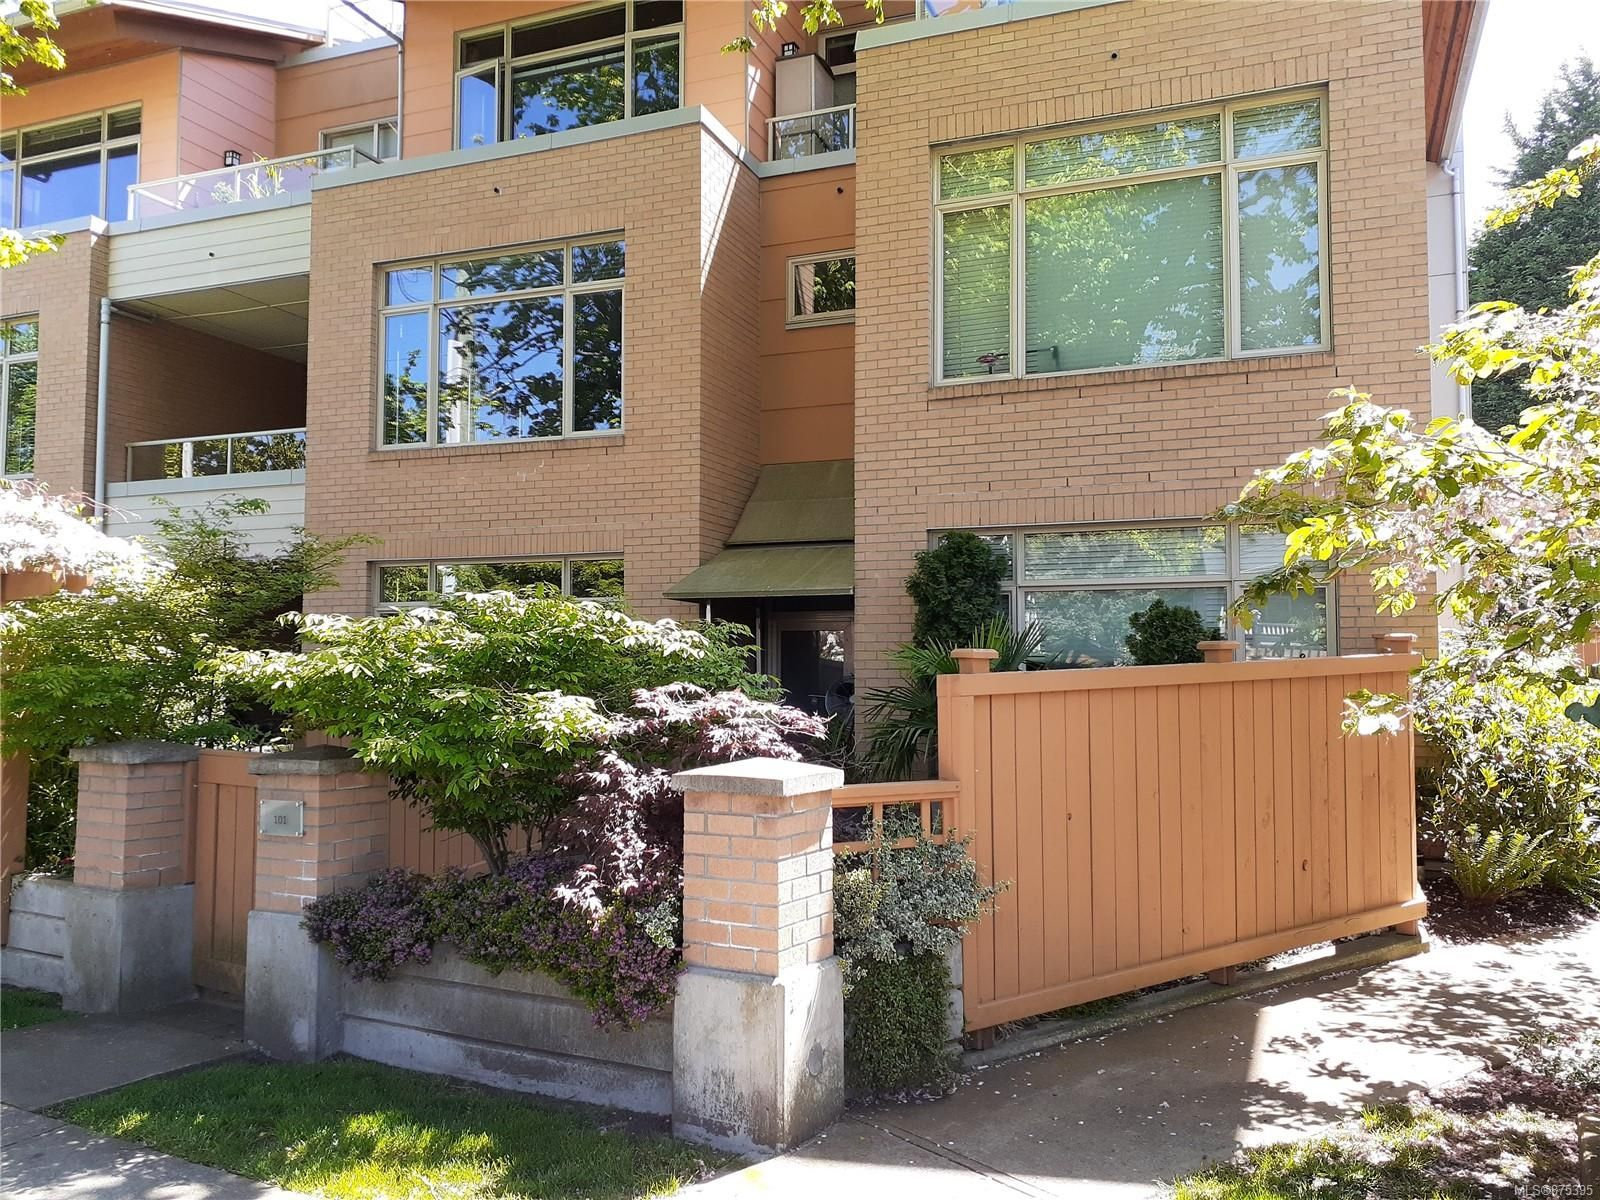 Main Photo: 101 1035 Sutlej St in : Vi Fairfield West Row/Townhouse for sale (Victoria)  : MLS®# 875395